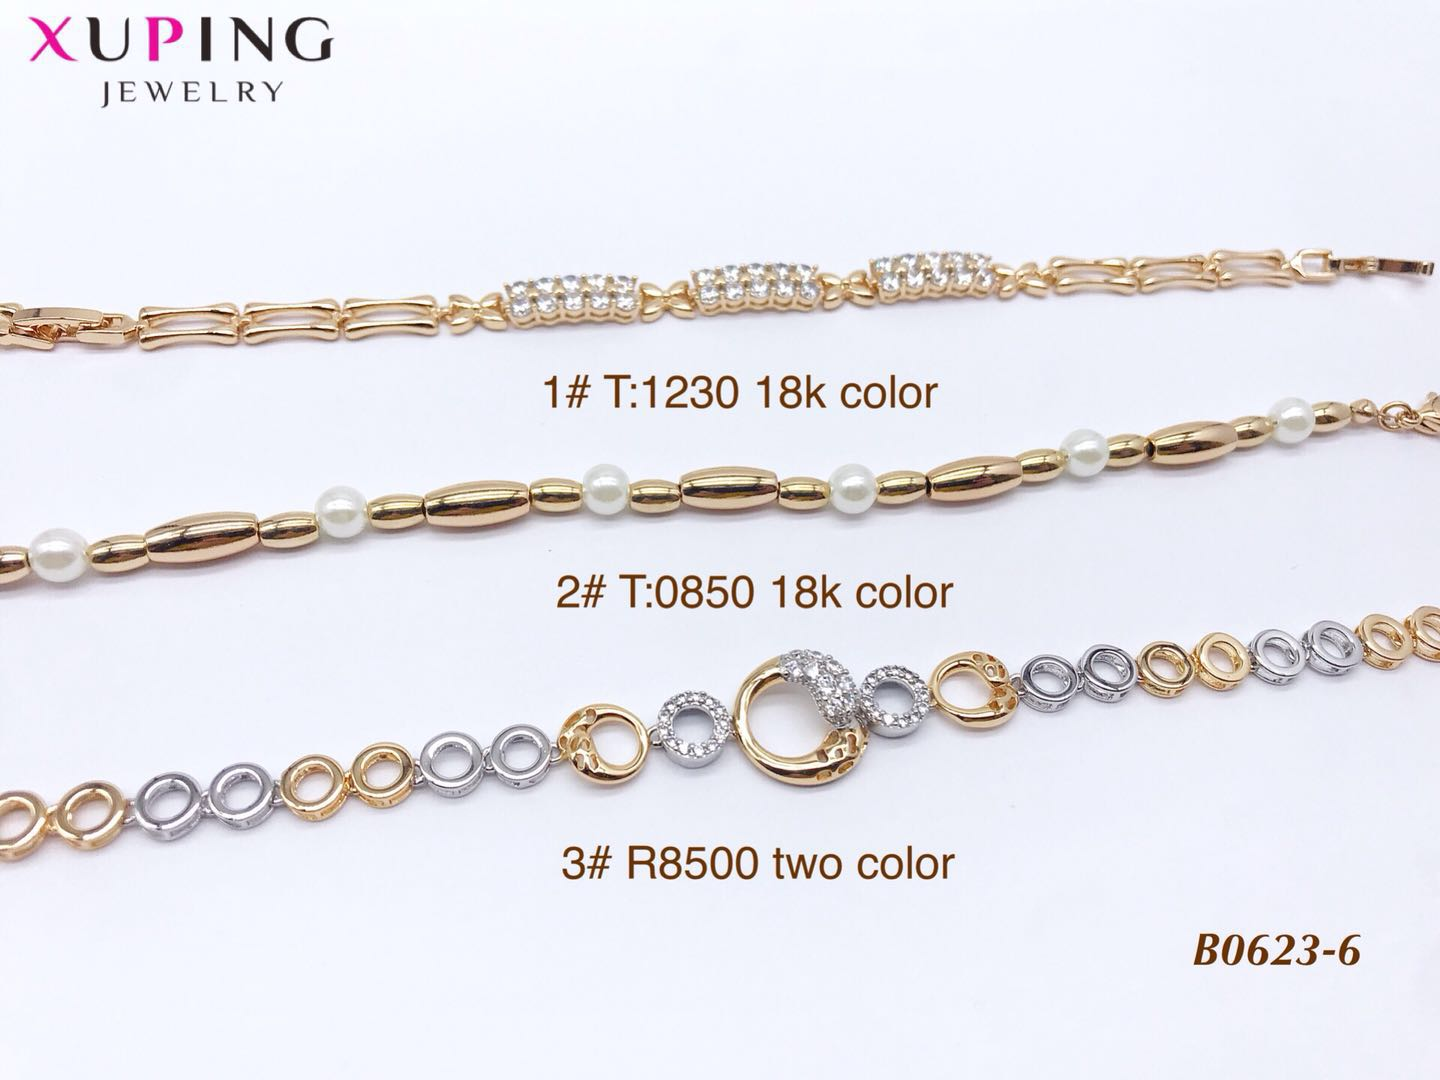 71311 Xuping Jewelry Fashion Hot Sale  Watch bracelet jewelry with 18K Gold Plated